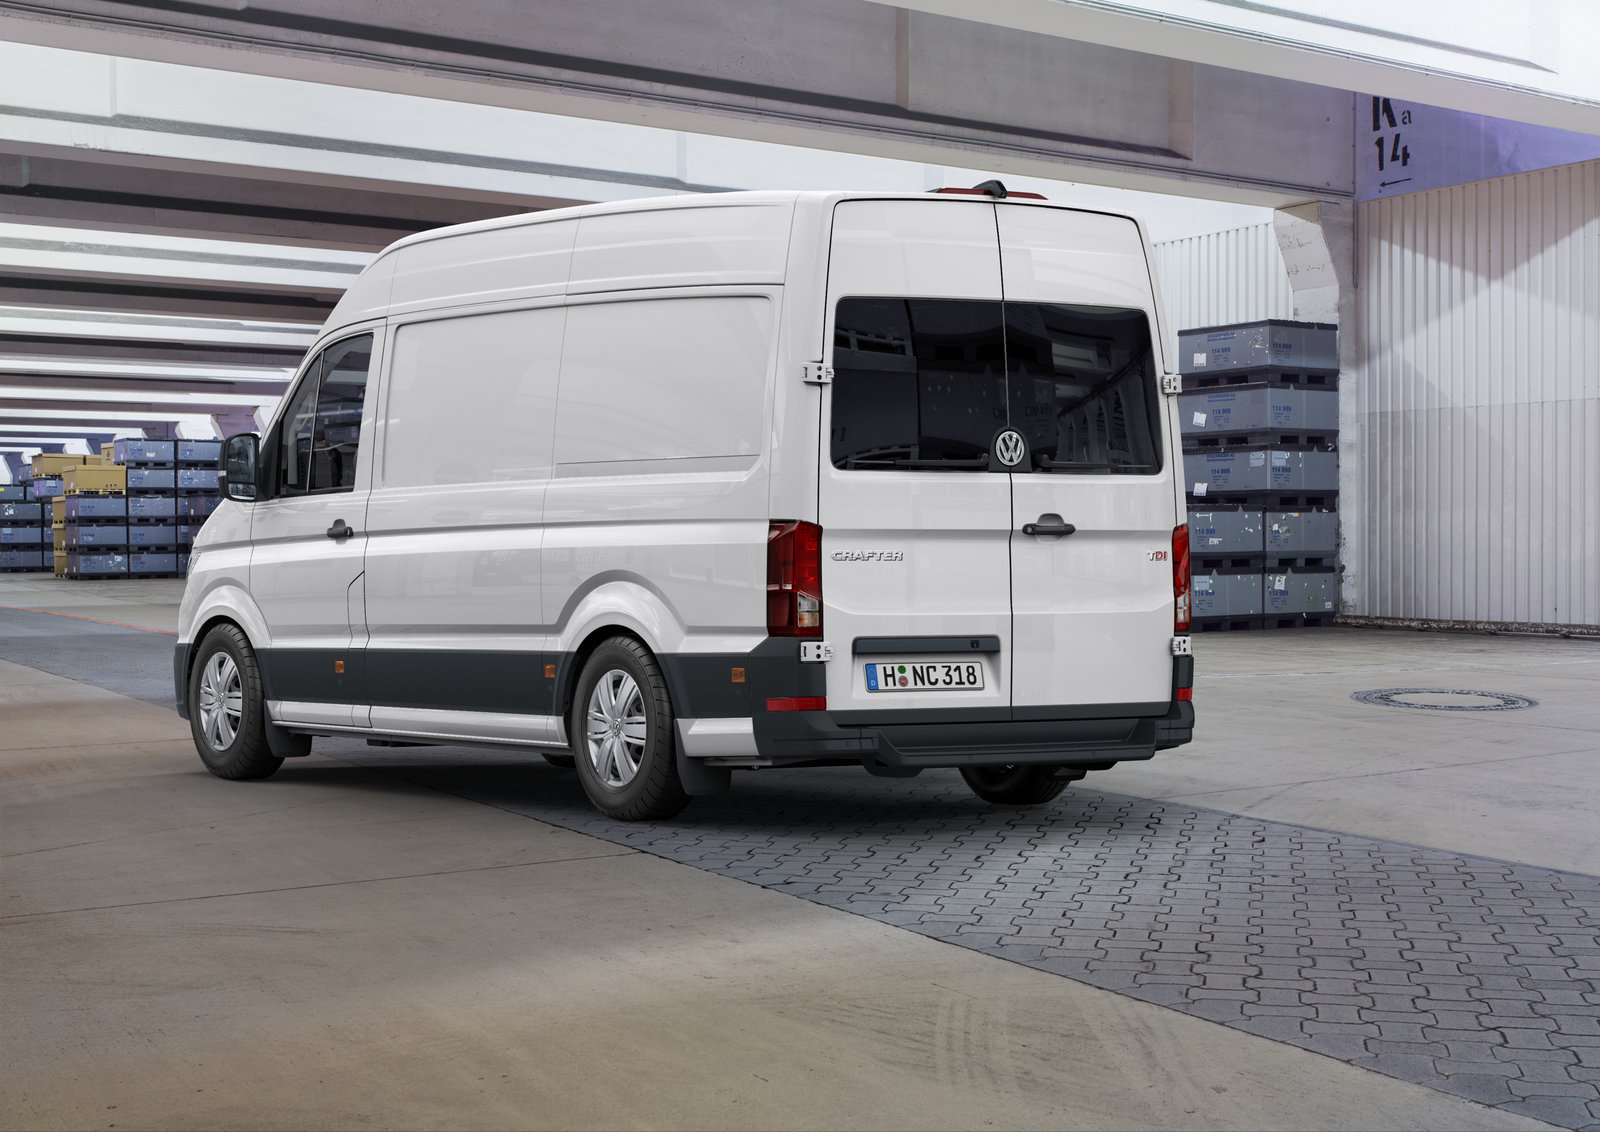 2017 volkswagen crafter picture 683717 truck review top speed. Black Bedroom Furniture Sets. Home Design Ideas